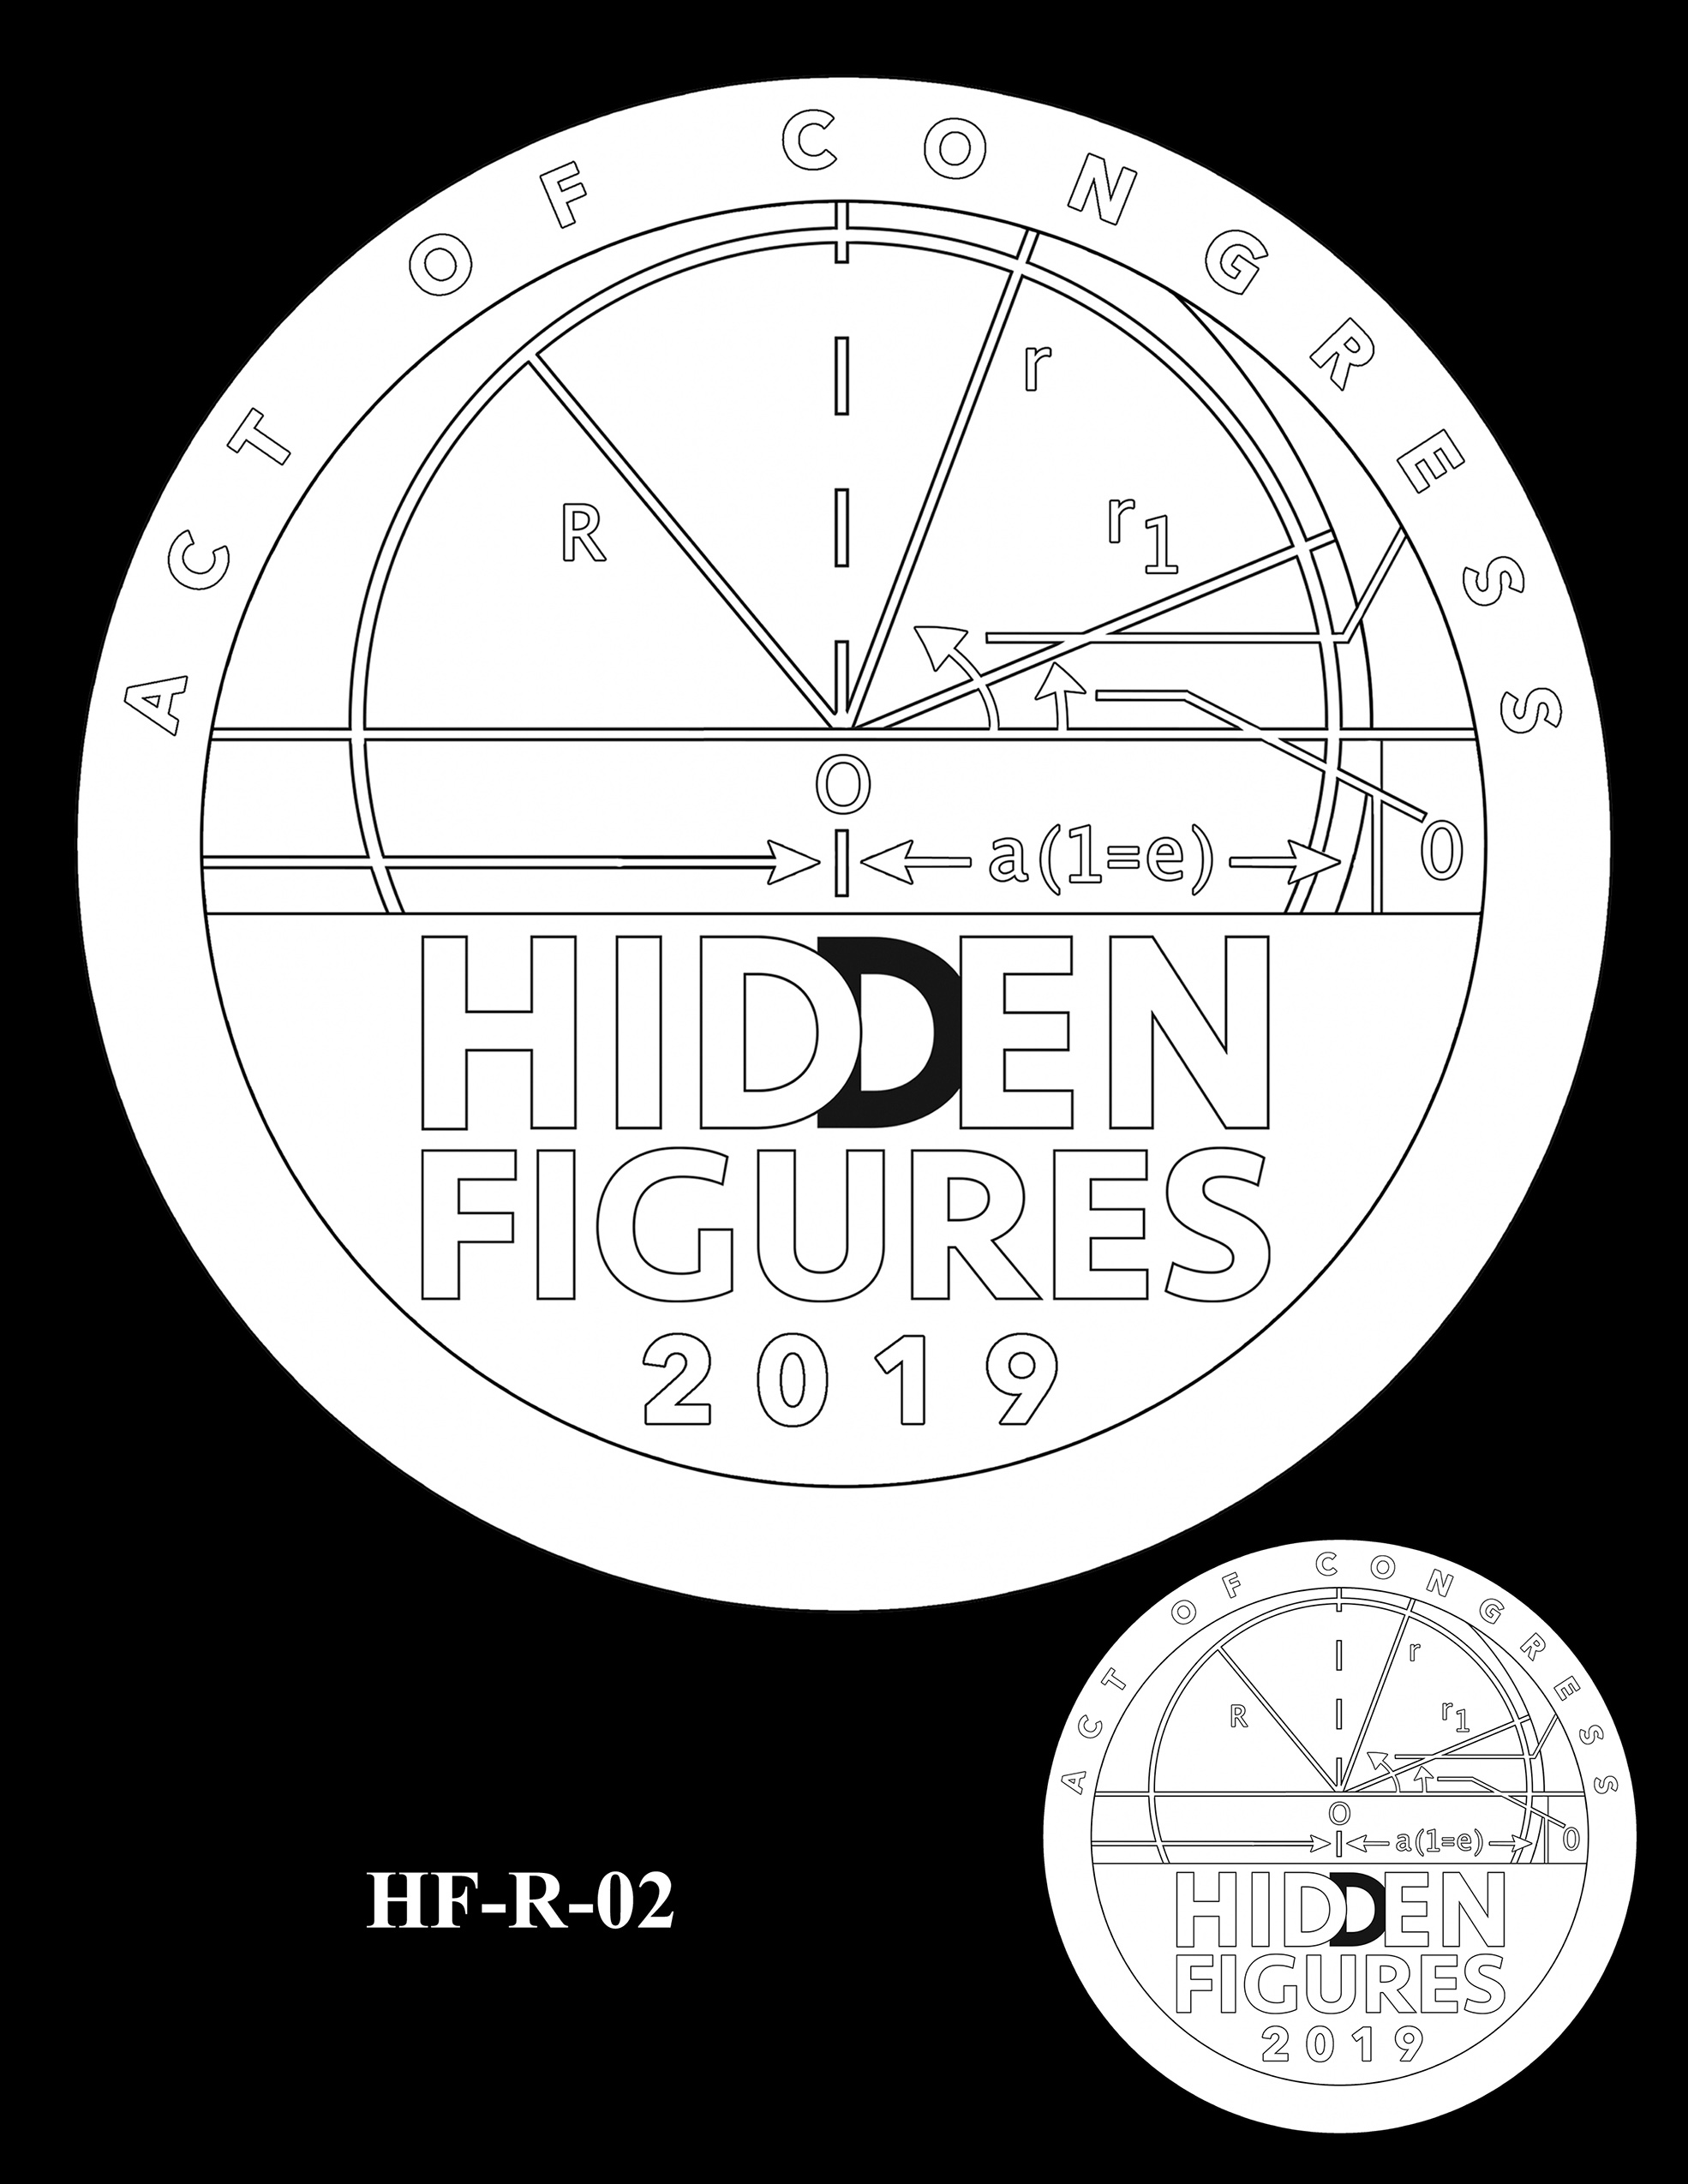 HF-R-02 -- Hidden Figures Group Congressional Gold Medal